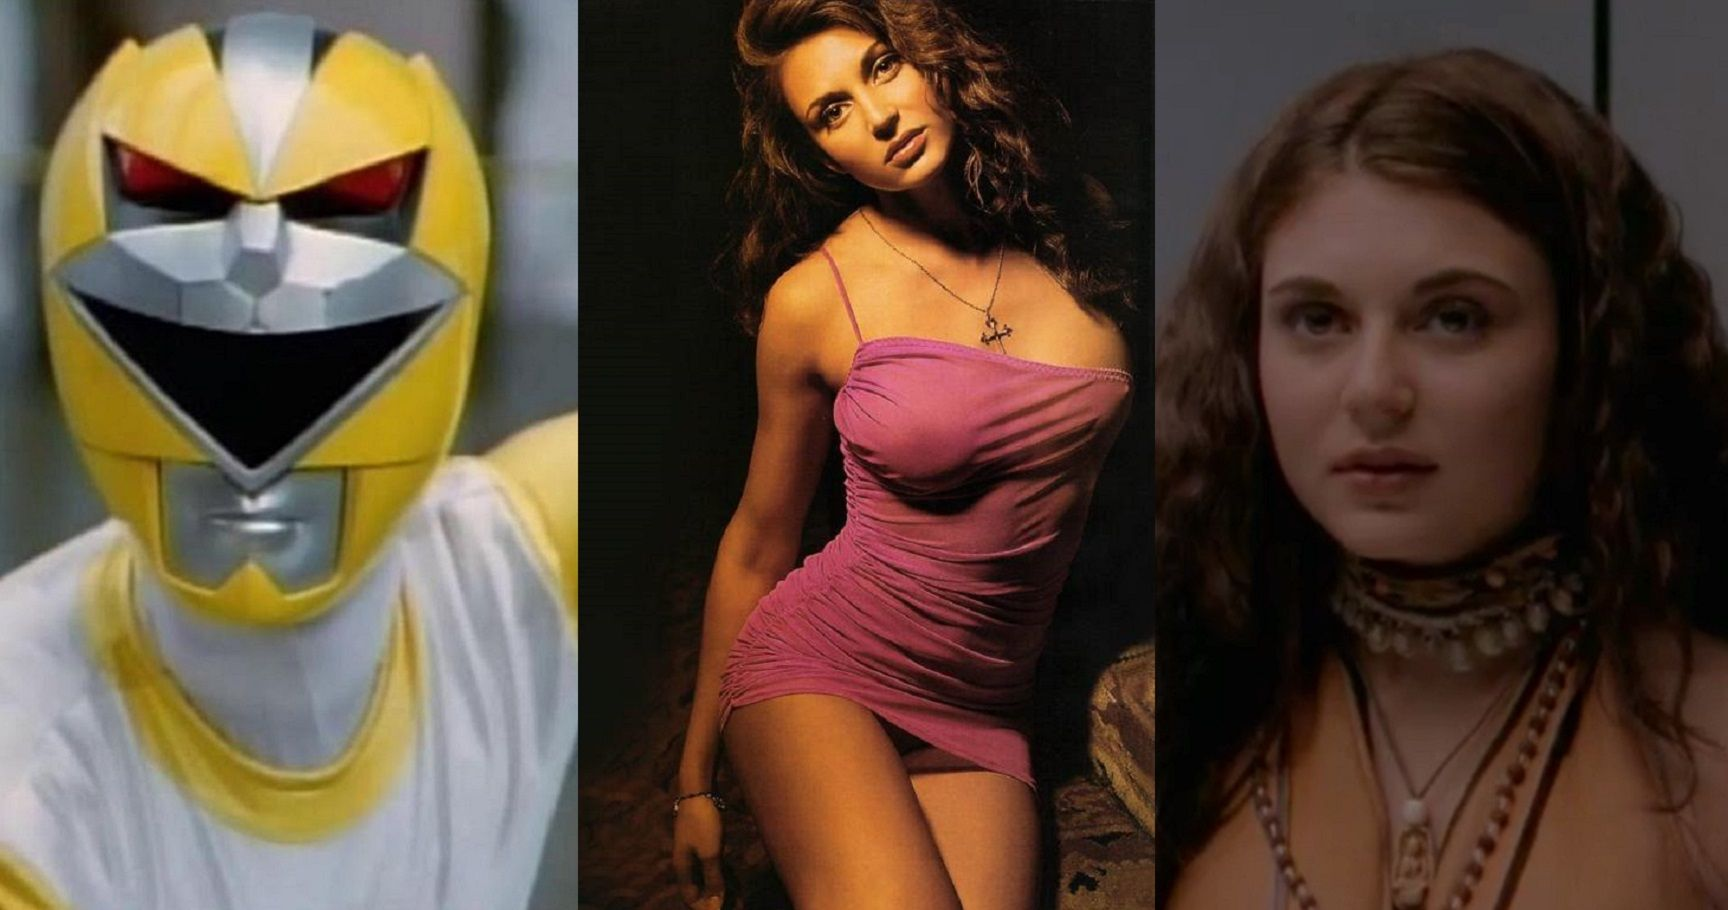 The 20 Hottest Power Ranger Babes